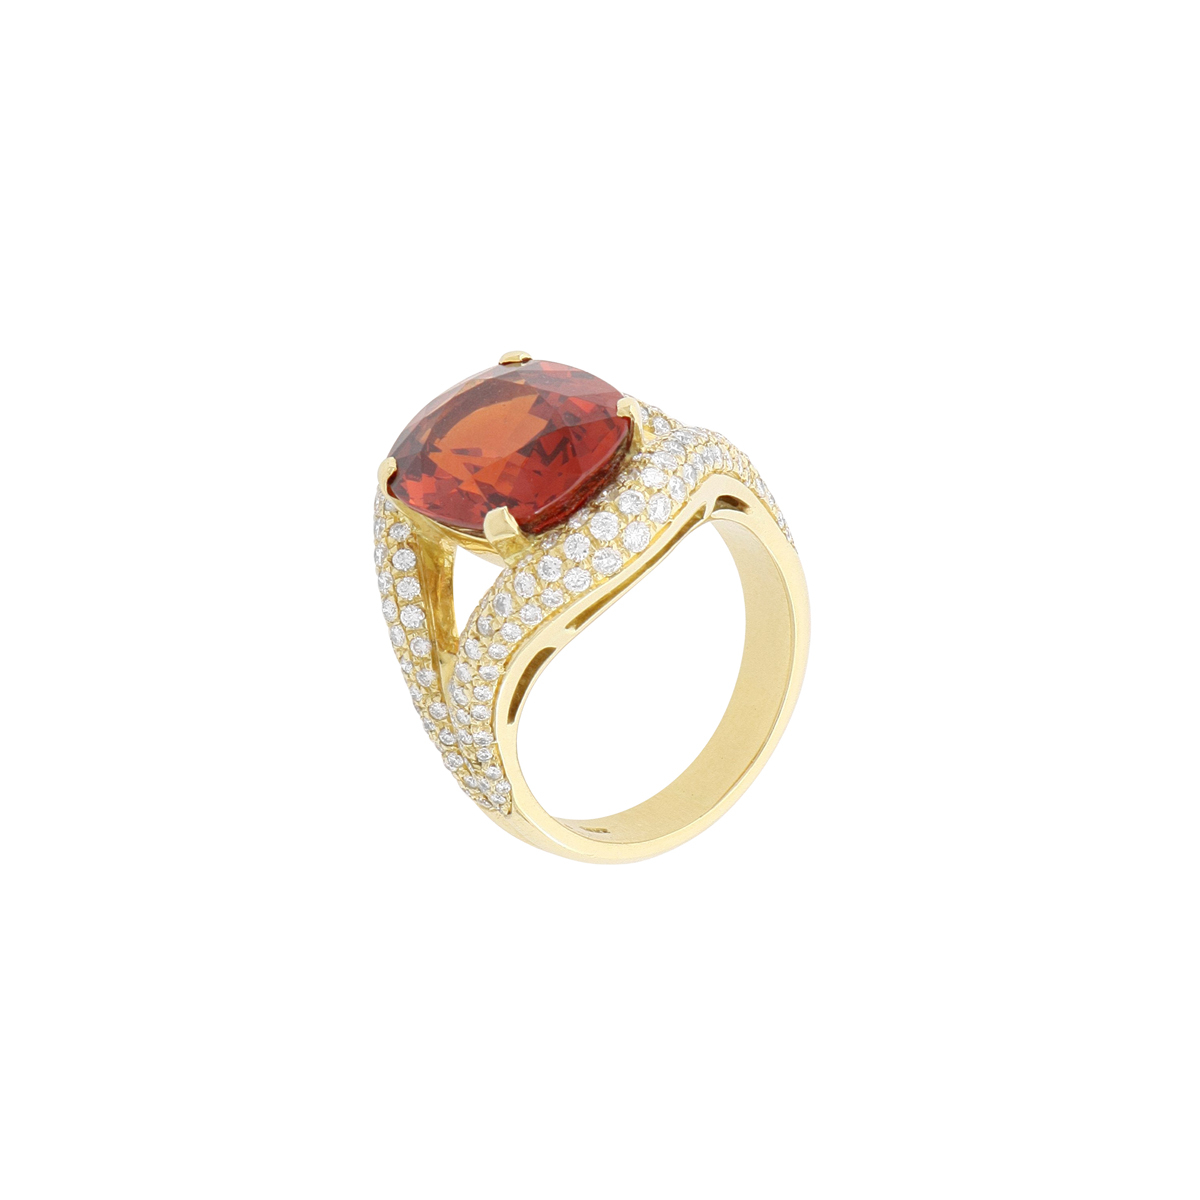 Beautiful red spinel and white diamonds ring